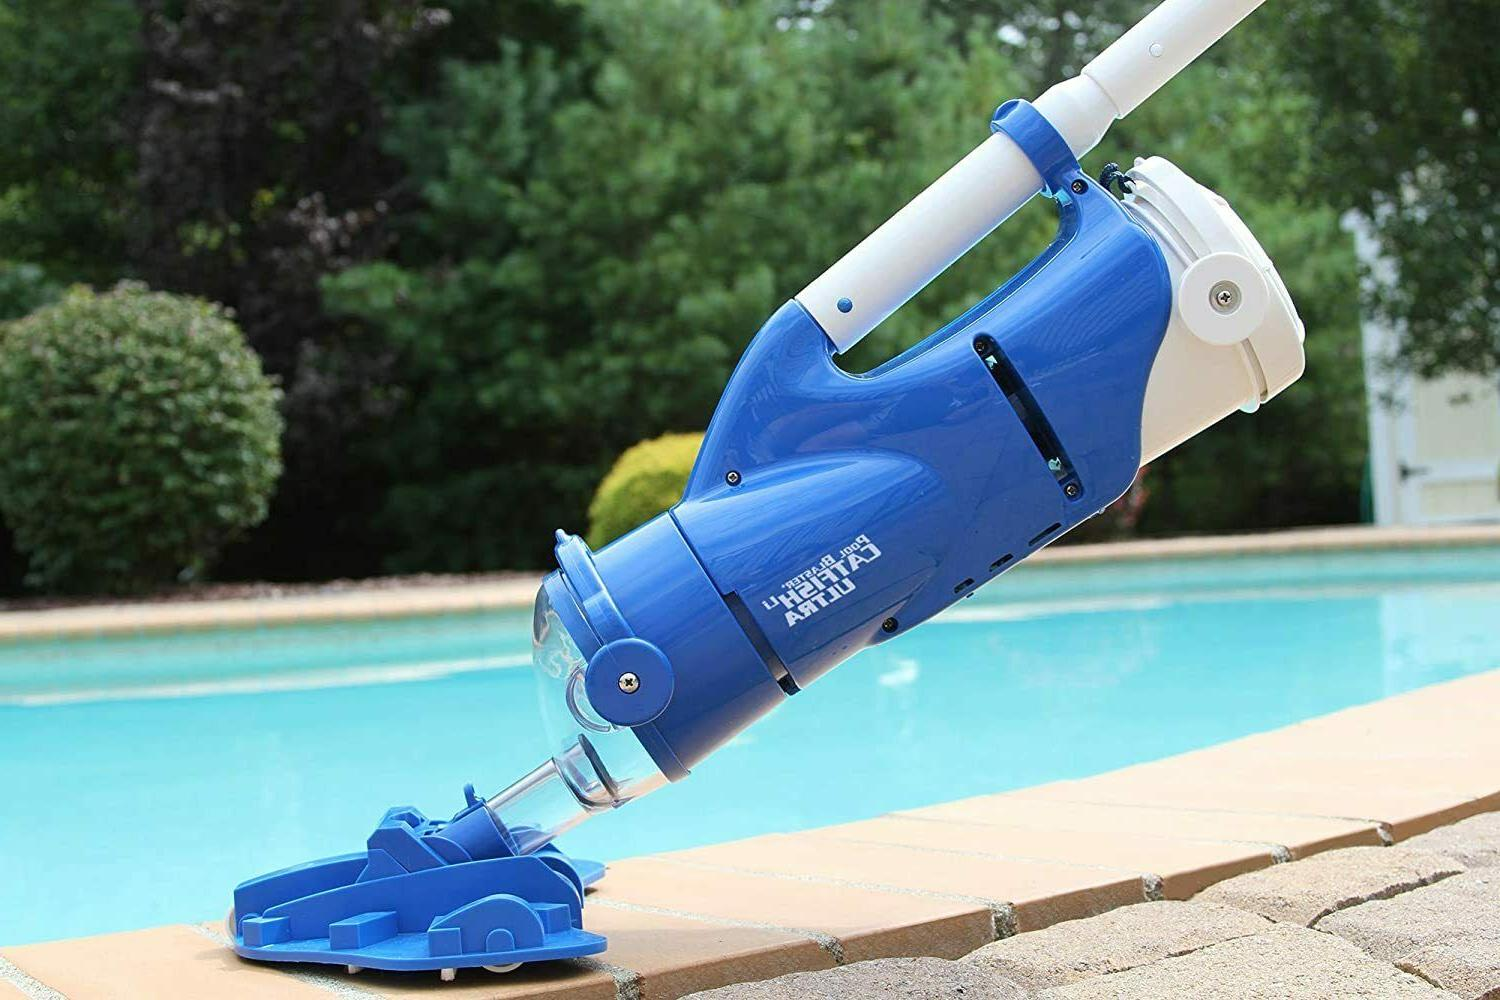 POOL Catfish Rechargeable, Pool-Cleaner